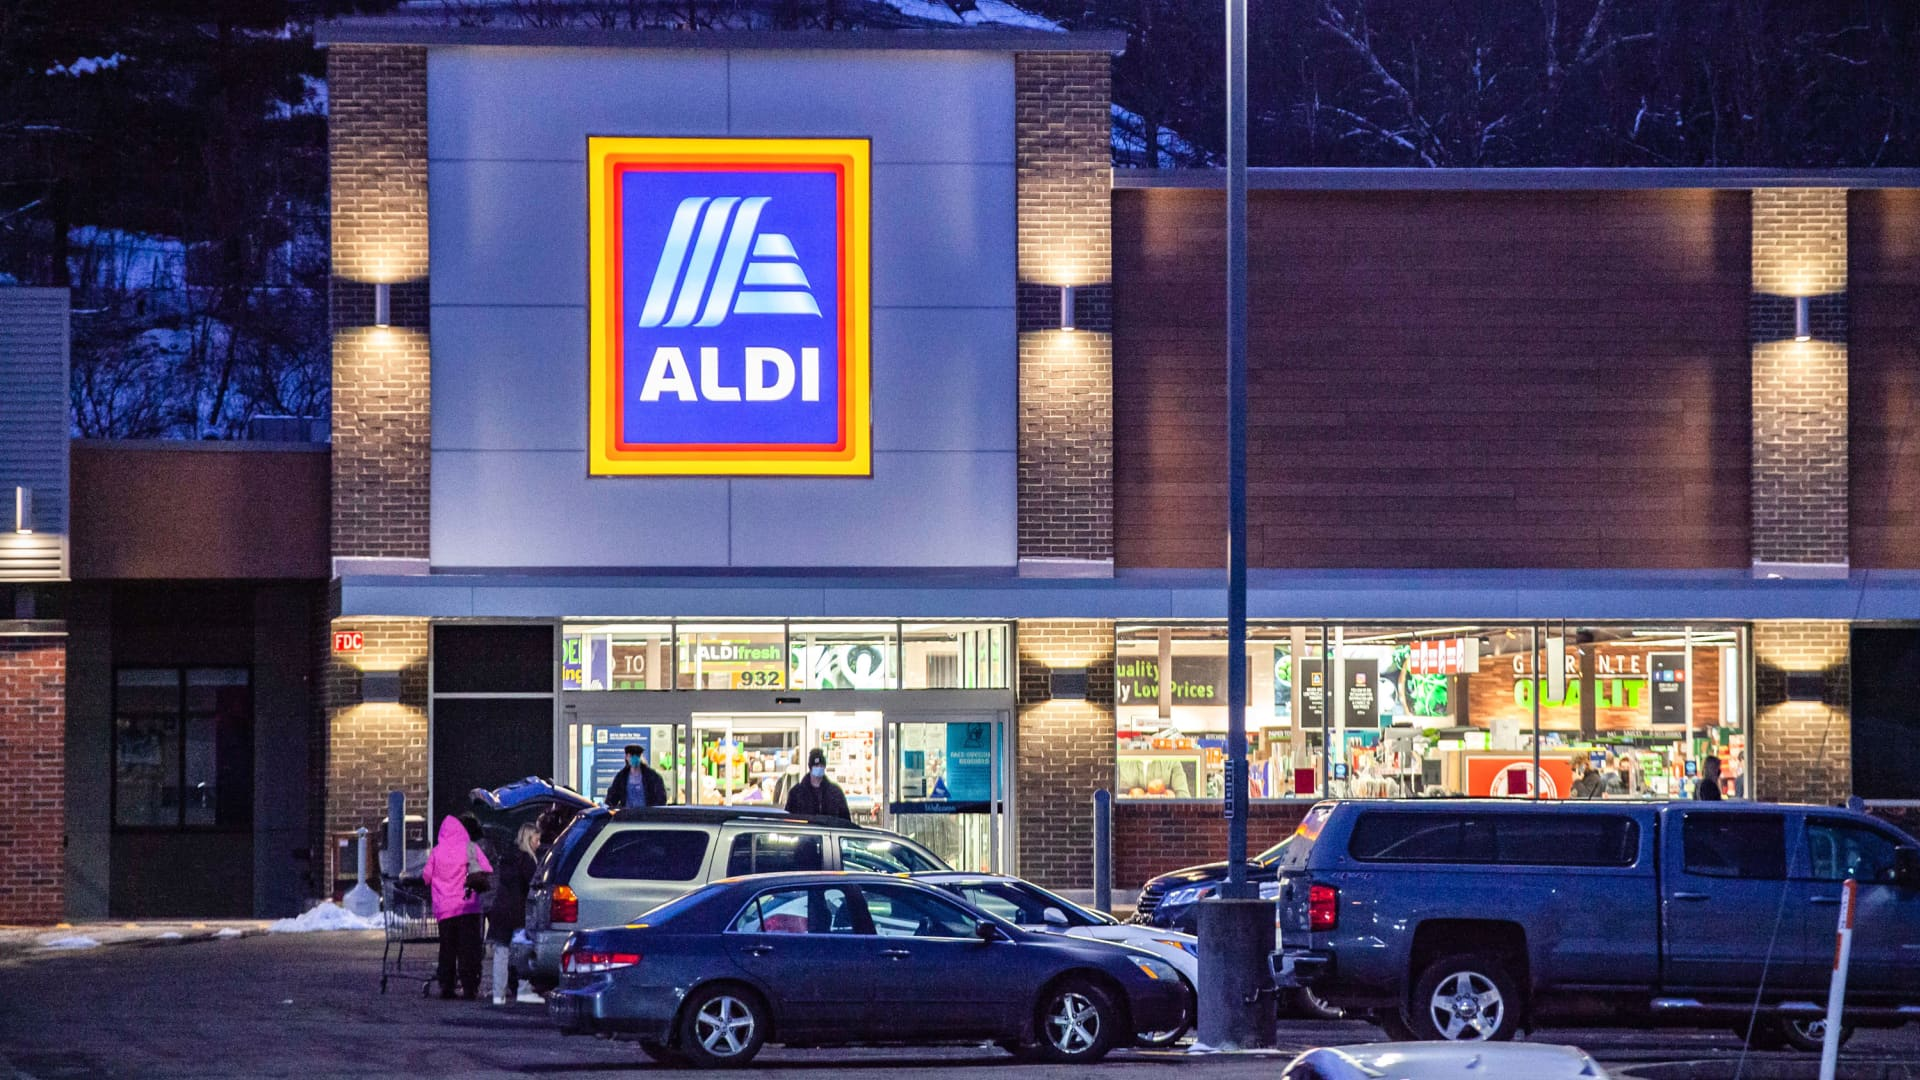 An Aldi logo is seen at one of their stores in Athens, Ohio.